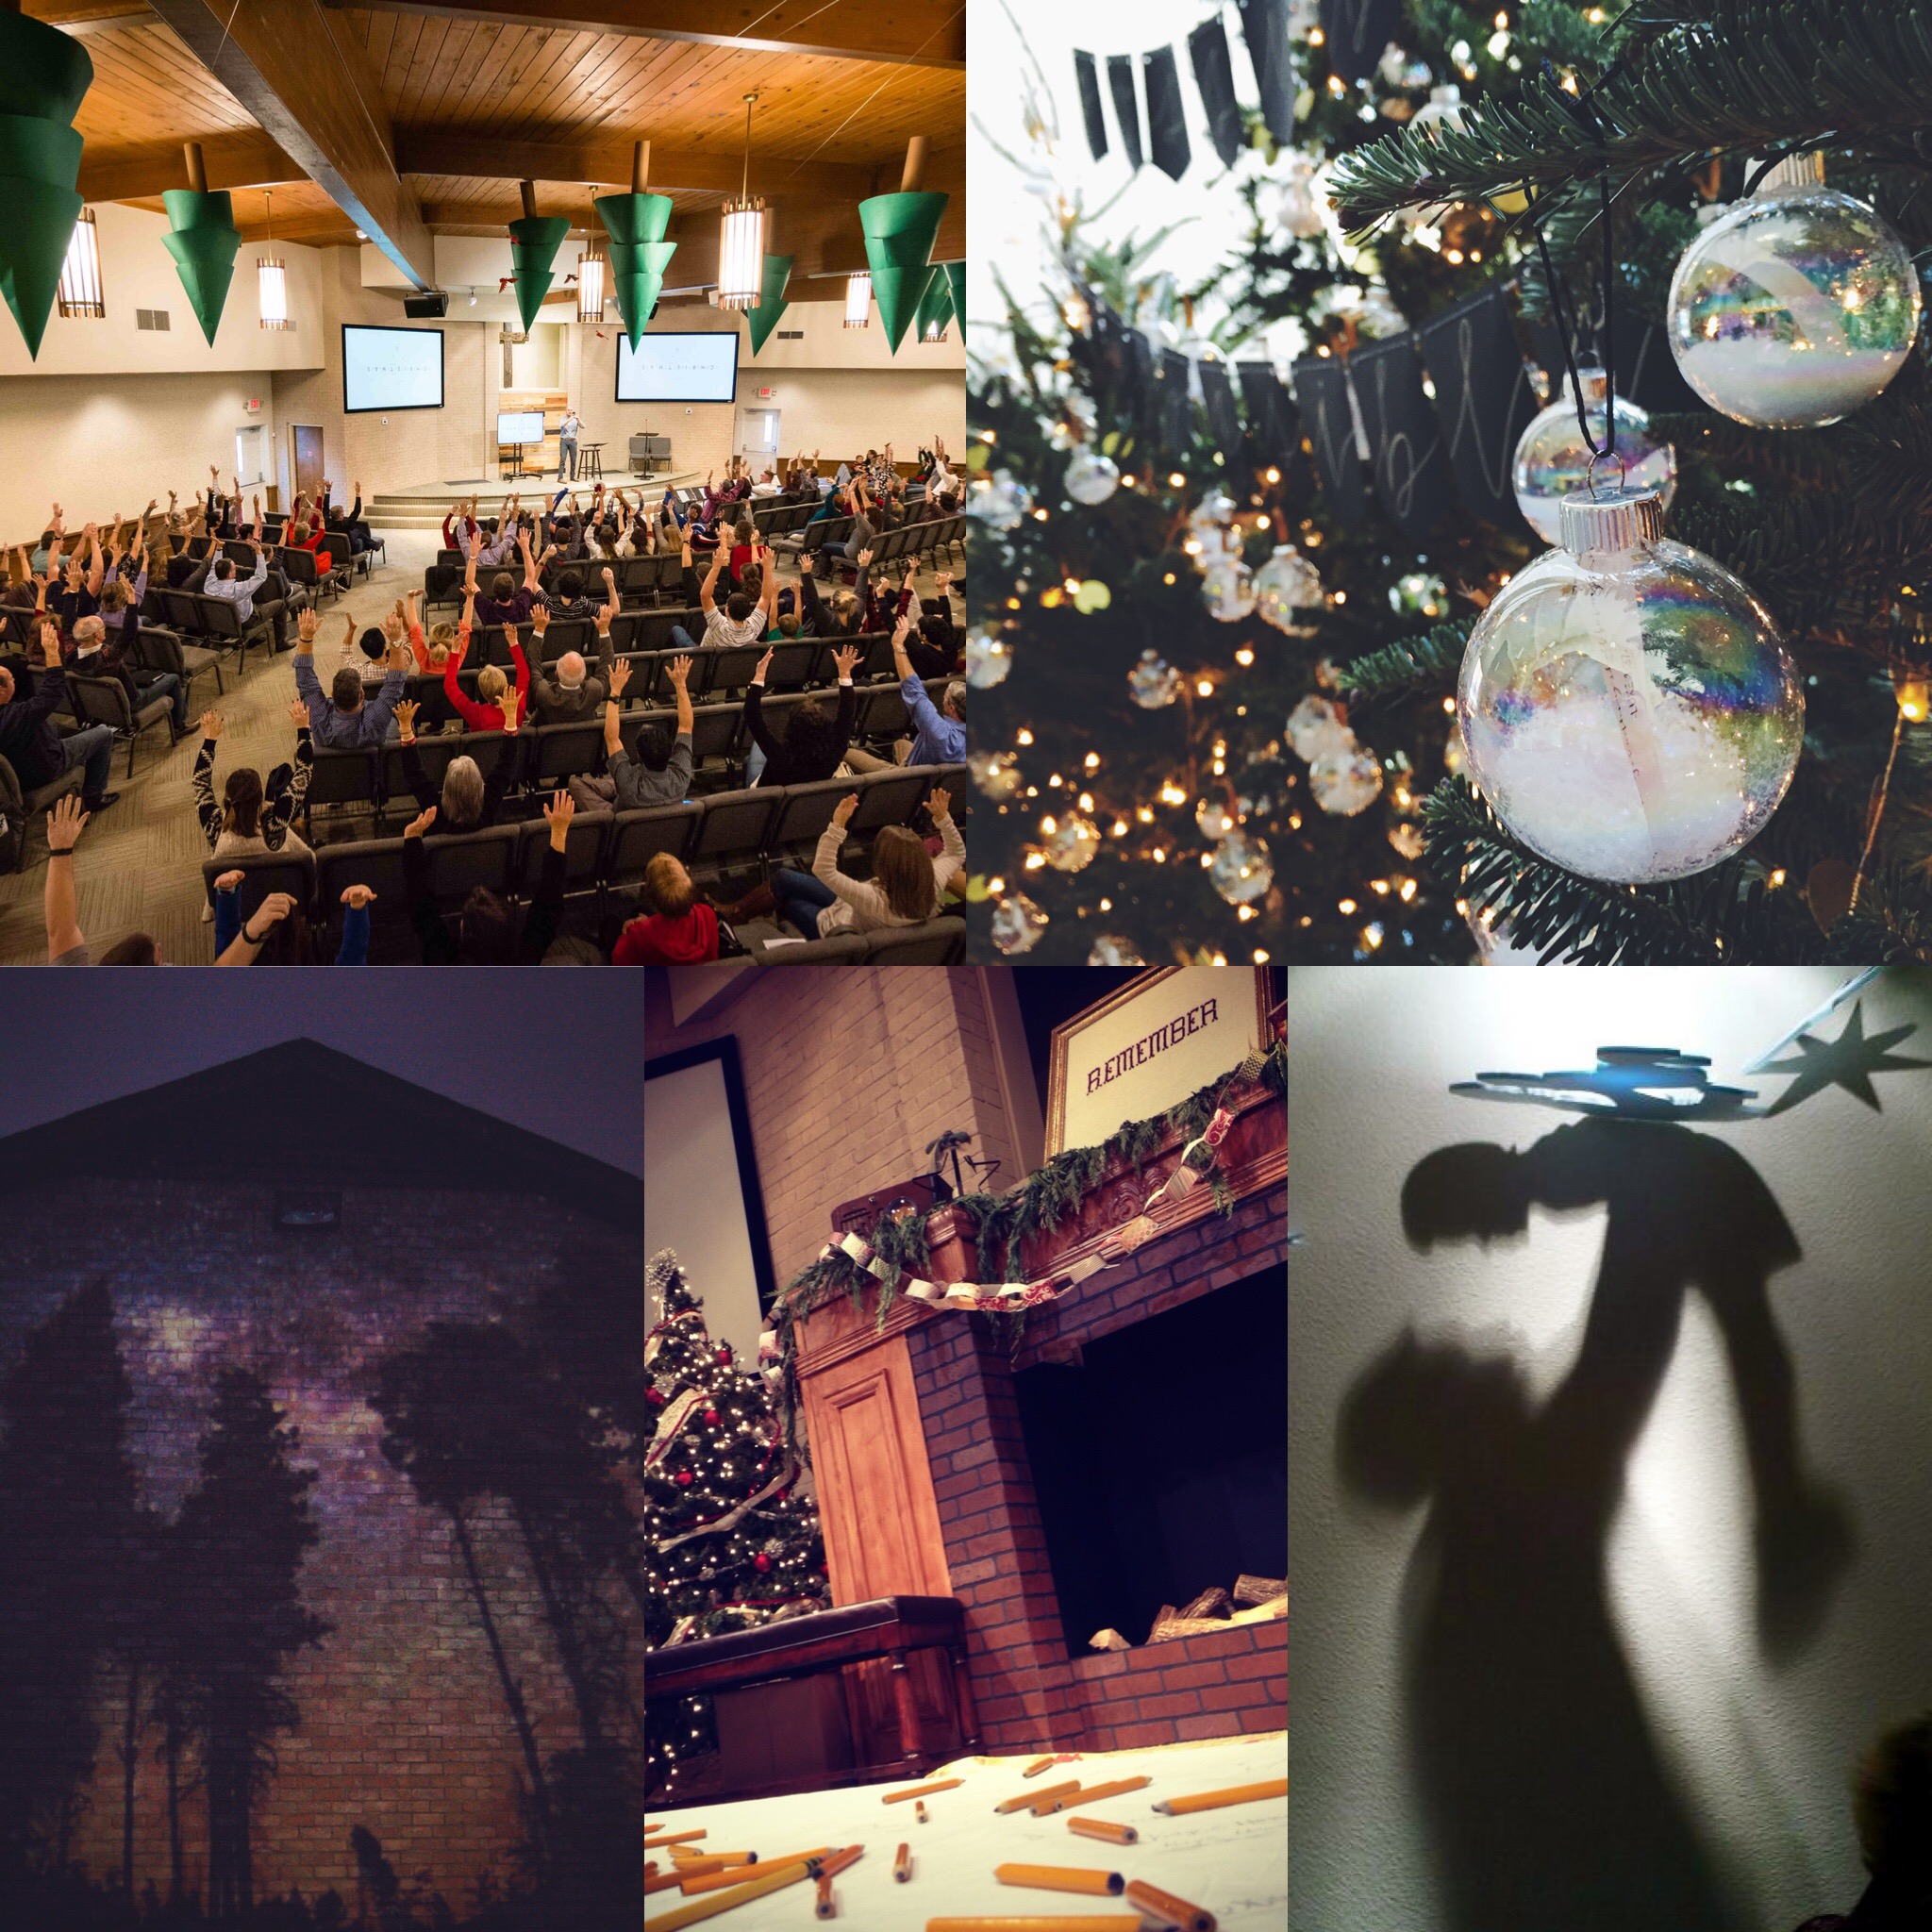 Images from past Christmas worship gatherings at RRCOC.